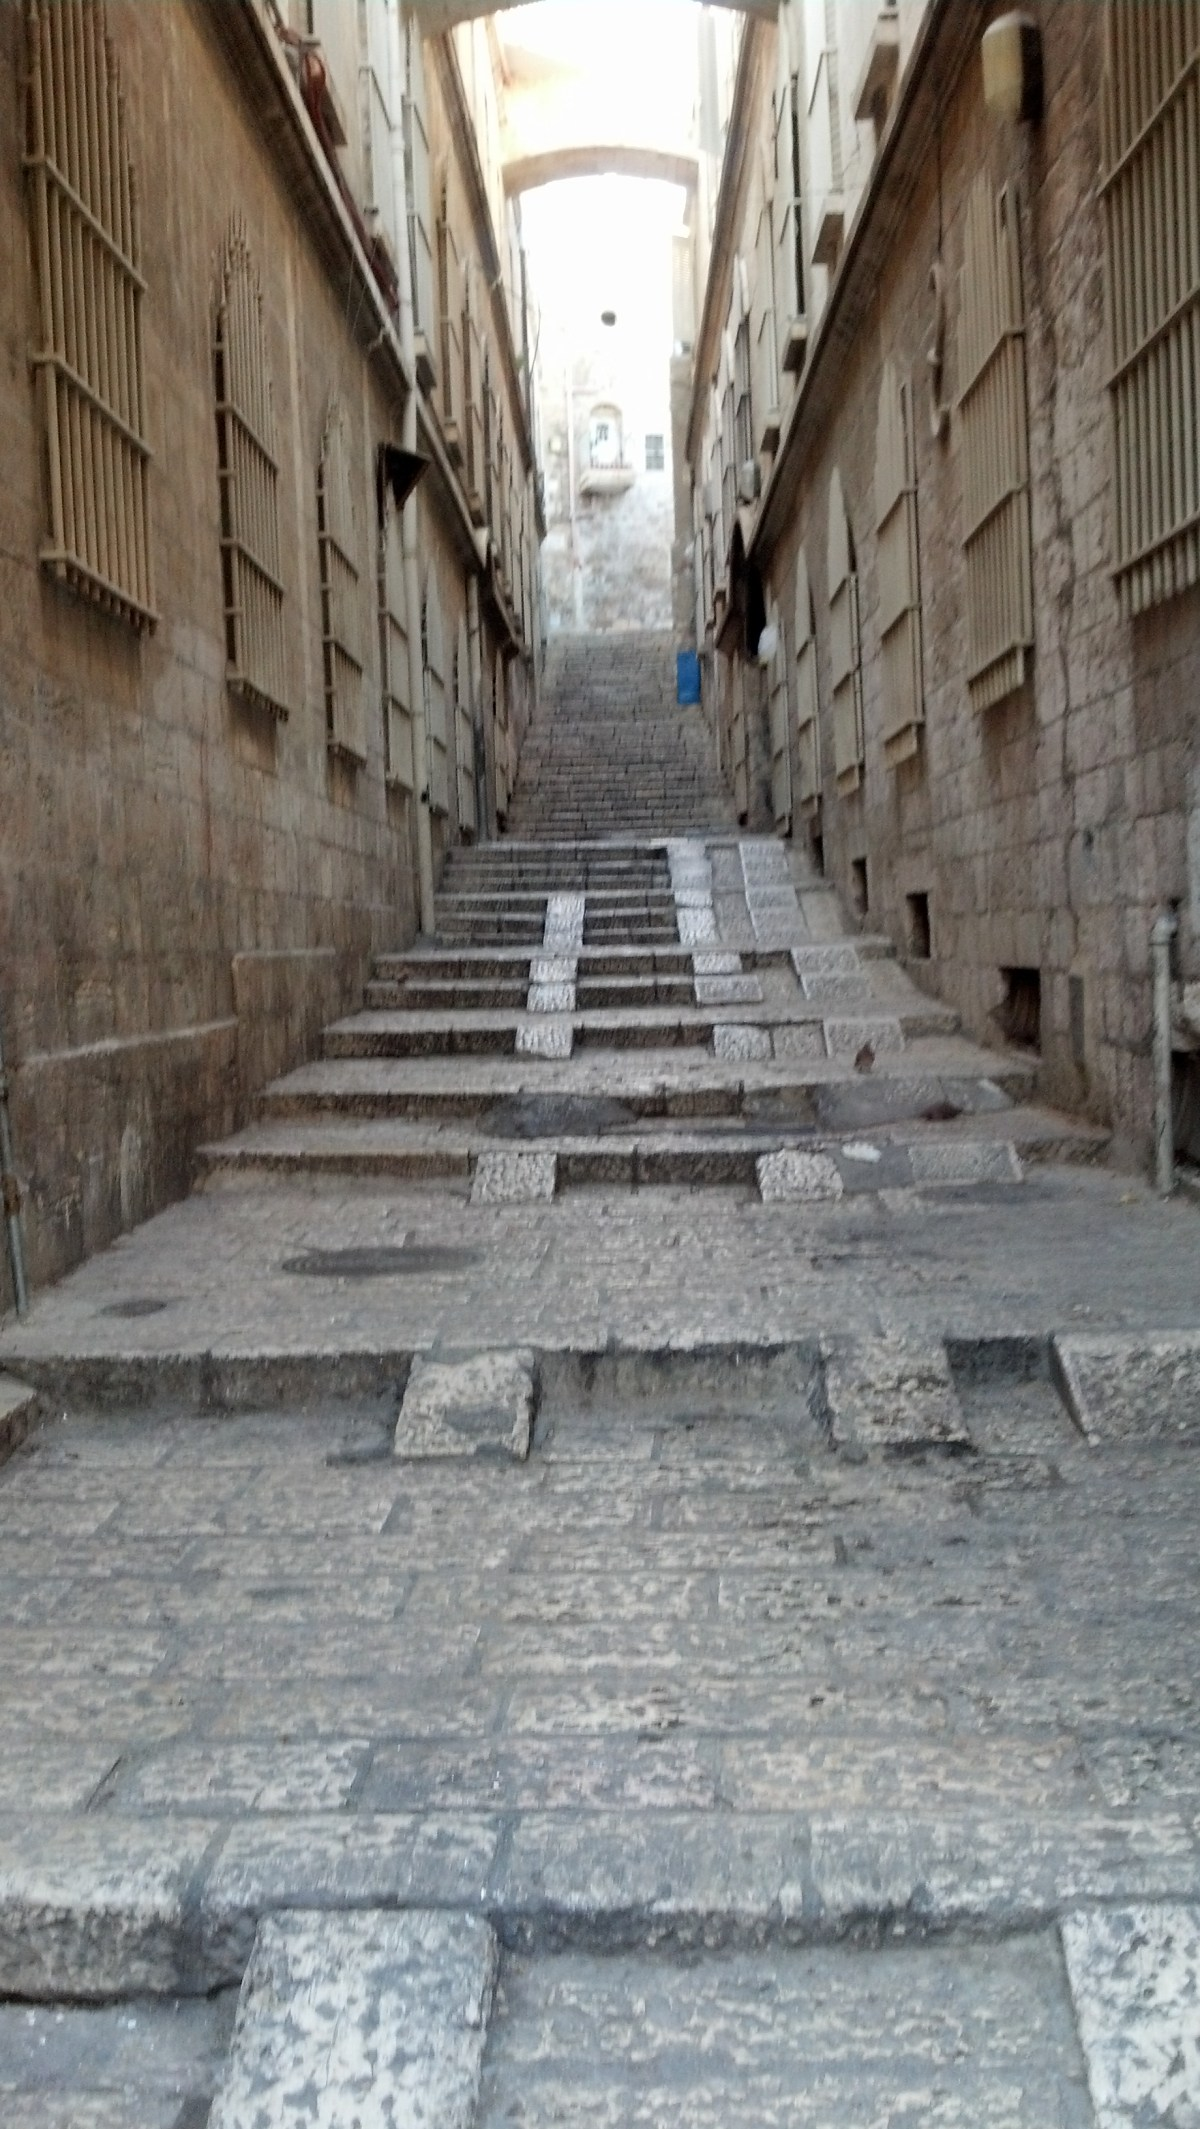 The Via Dolorosa in Jerusalem, Israel: Photo Gallery